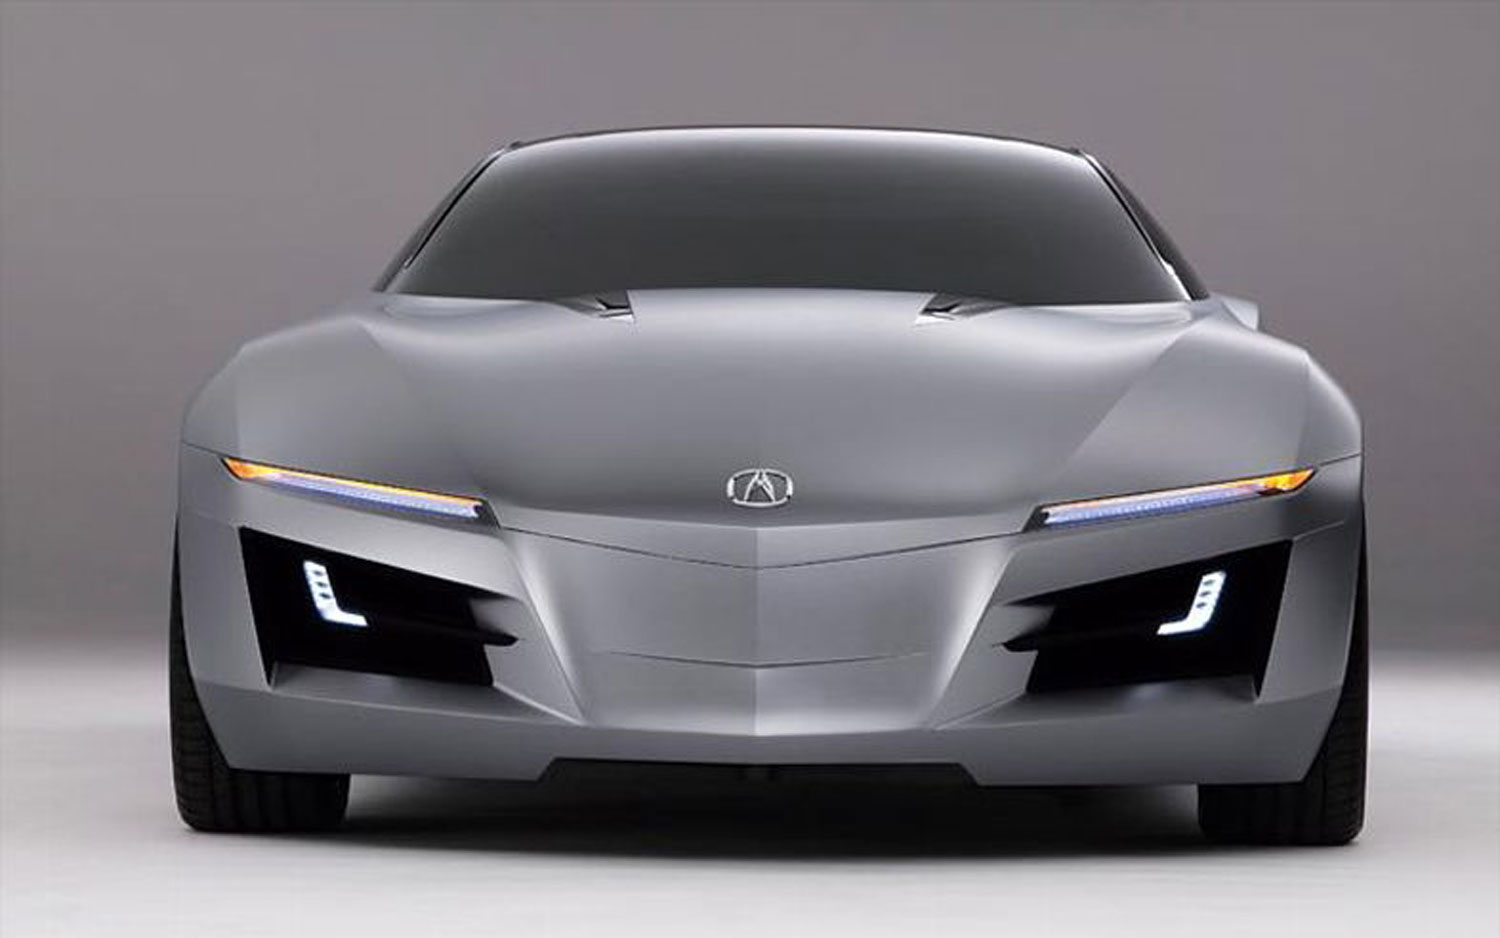 Could This Superhero Car Have Been The Next Acura Nsx Motor Trend